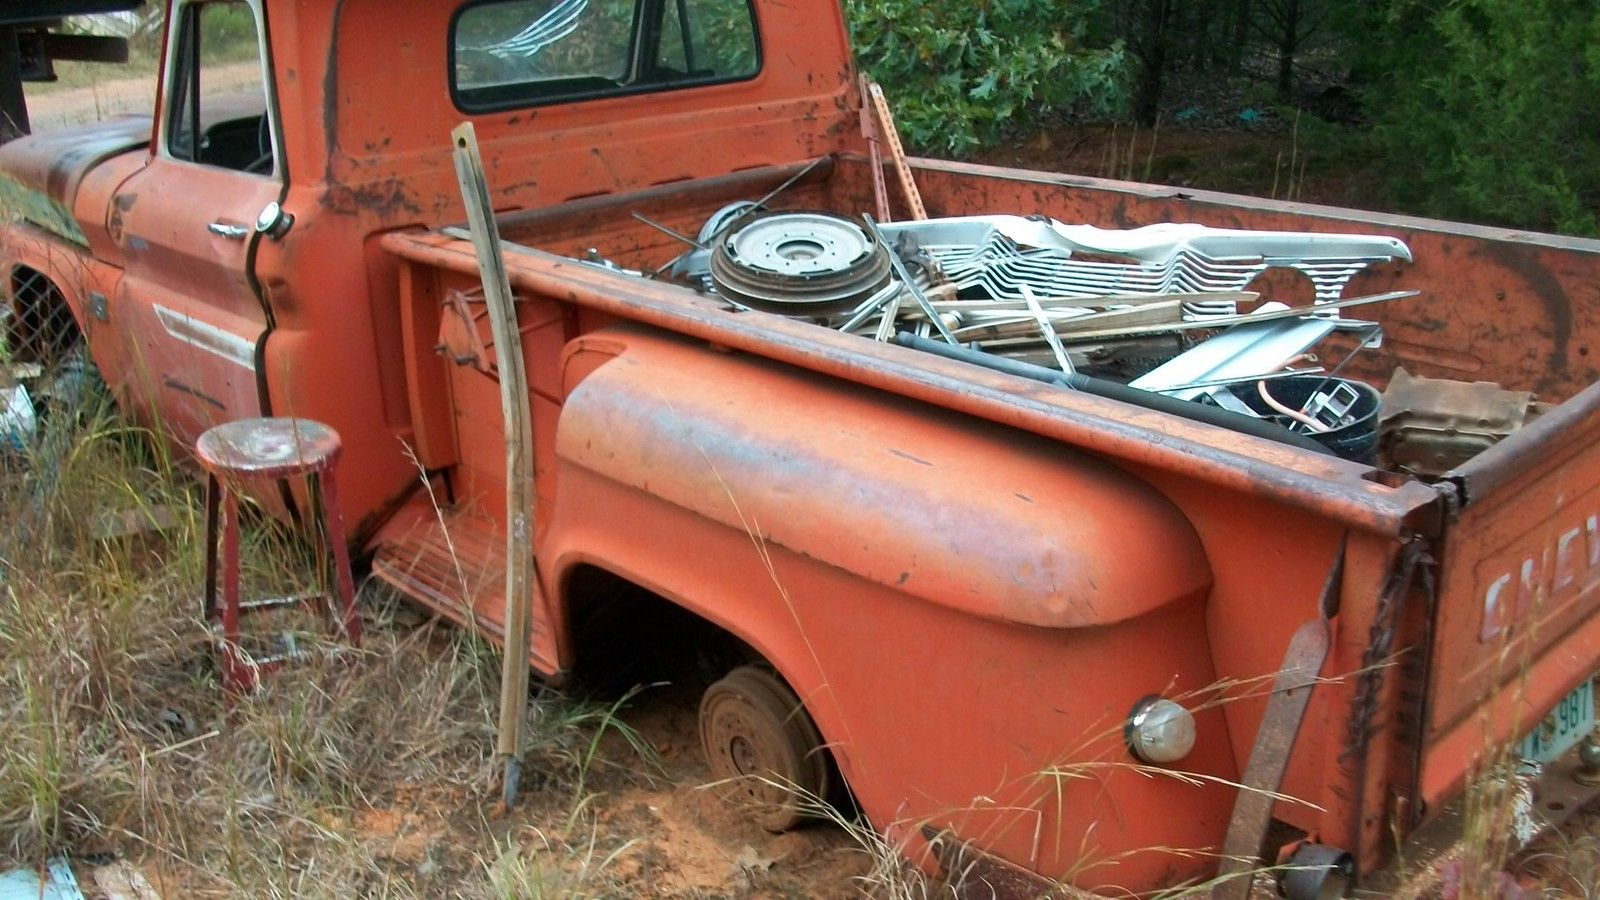 Terre Haute Chevrolet >> 65 Chevrolet long bed c10 step side - Classic Chevrolet C-10 1965 for sale